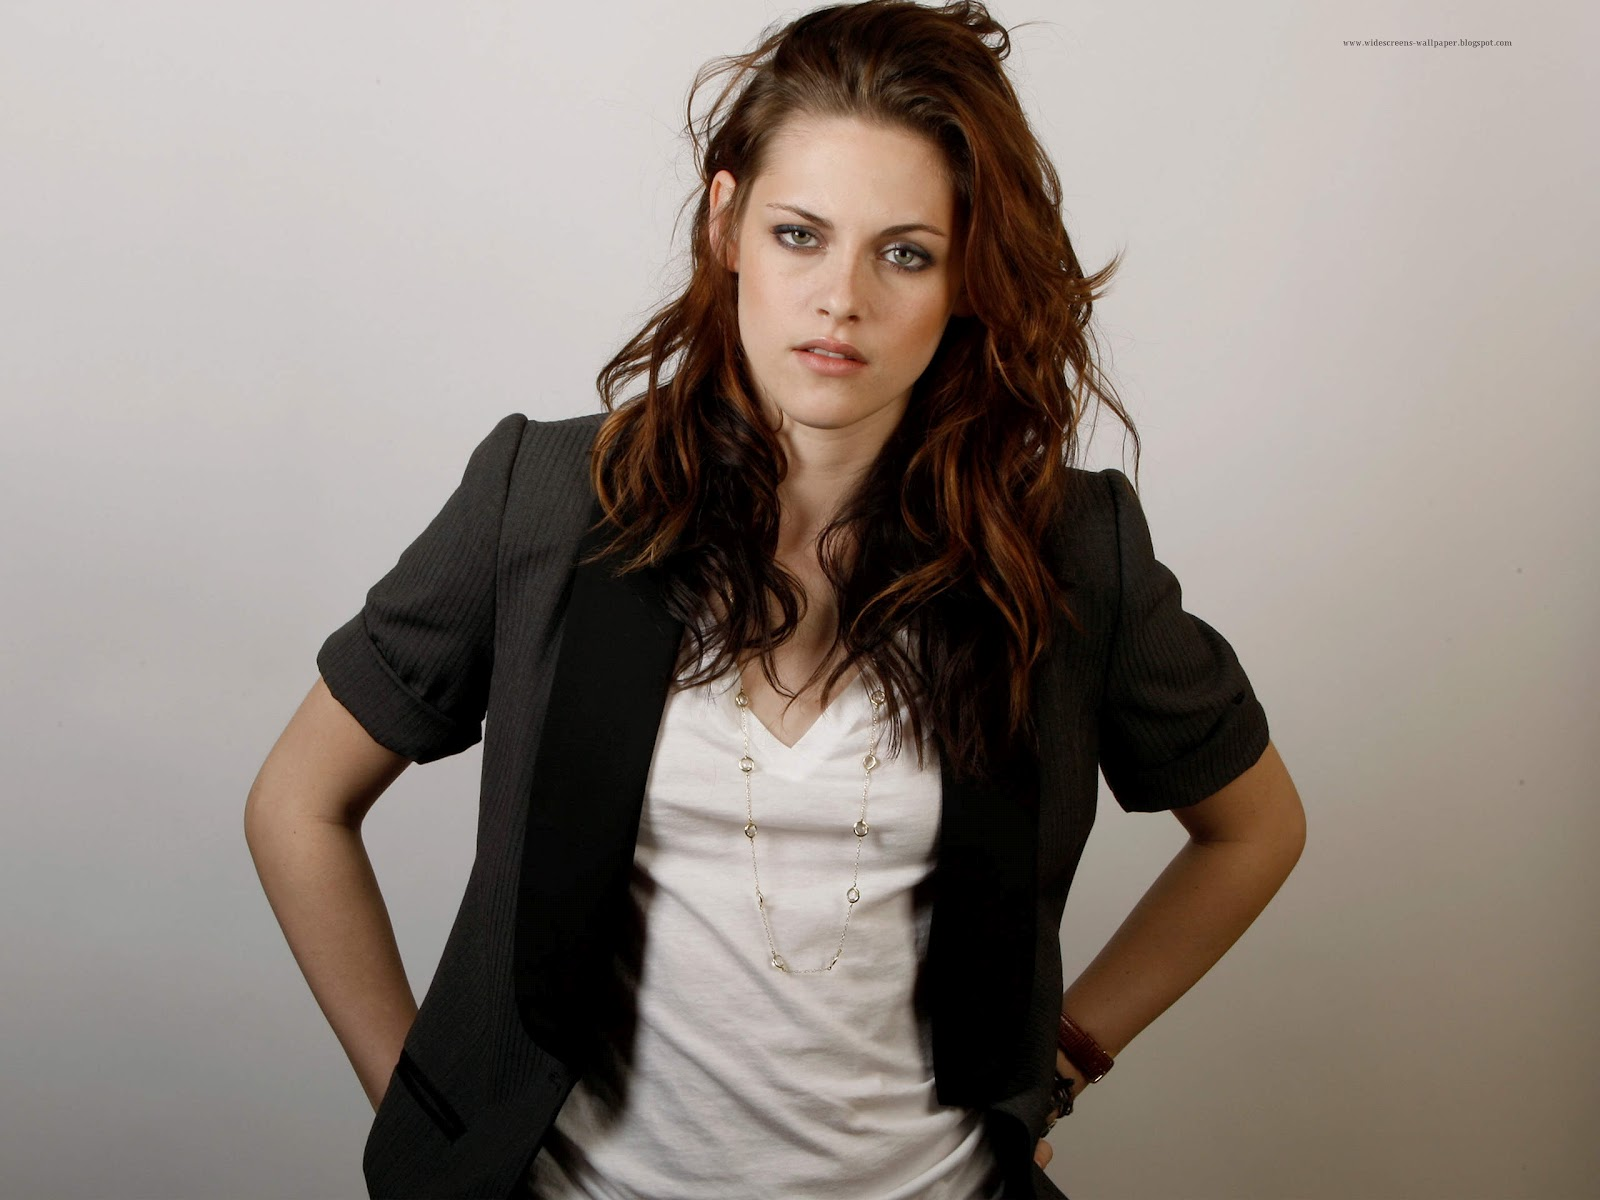 Kristen Stewart Wallpaper with full smile